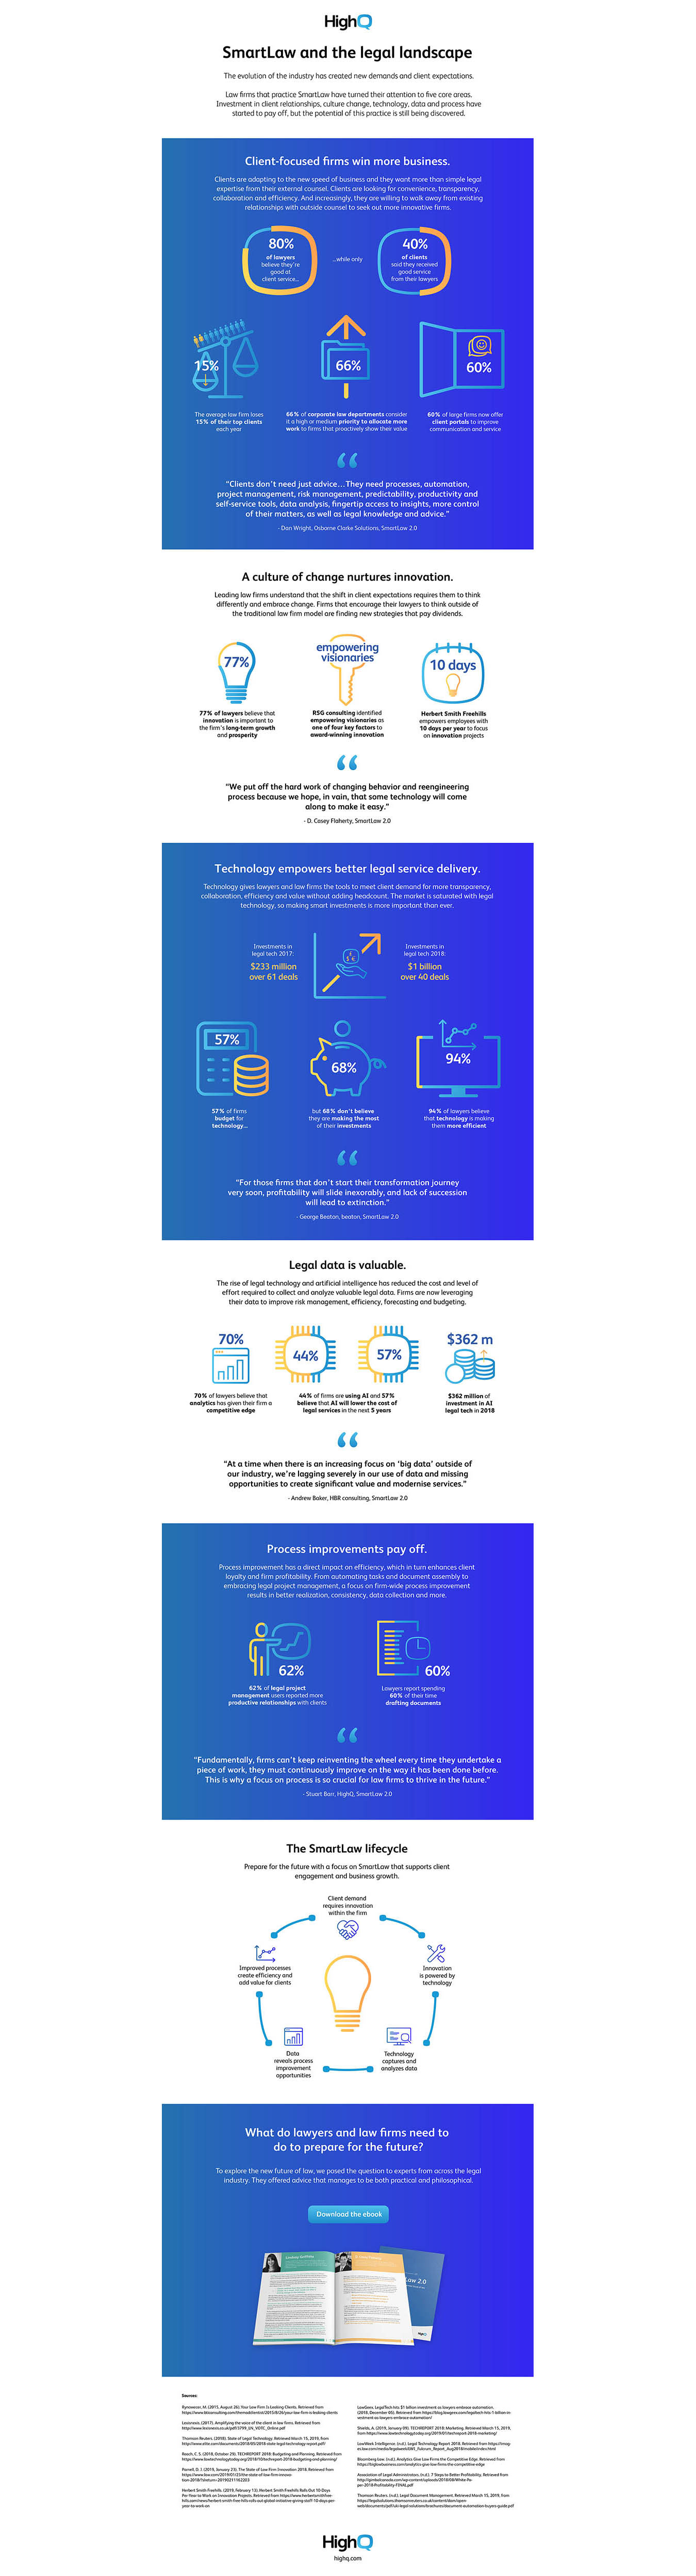 Infographic_SmartLaw and the legal landscape-US.jpg